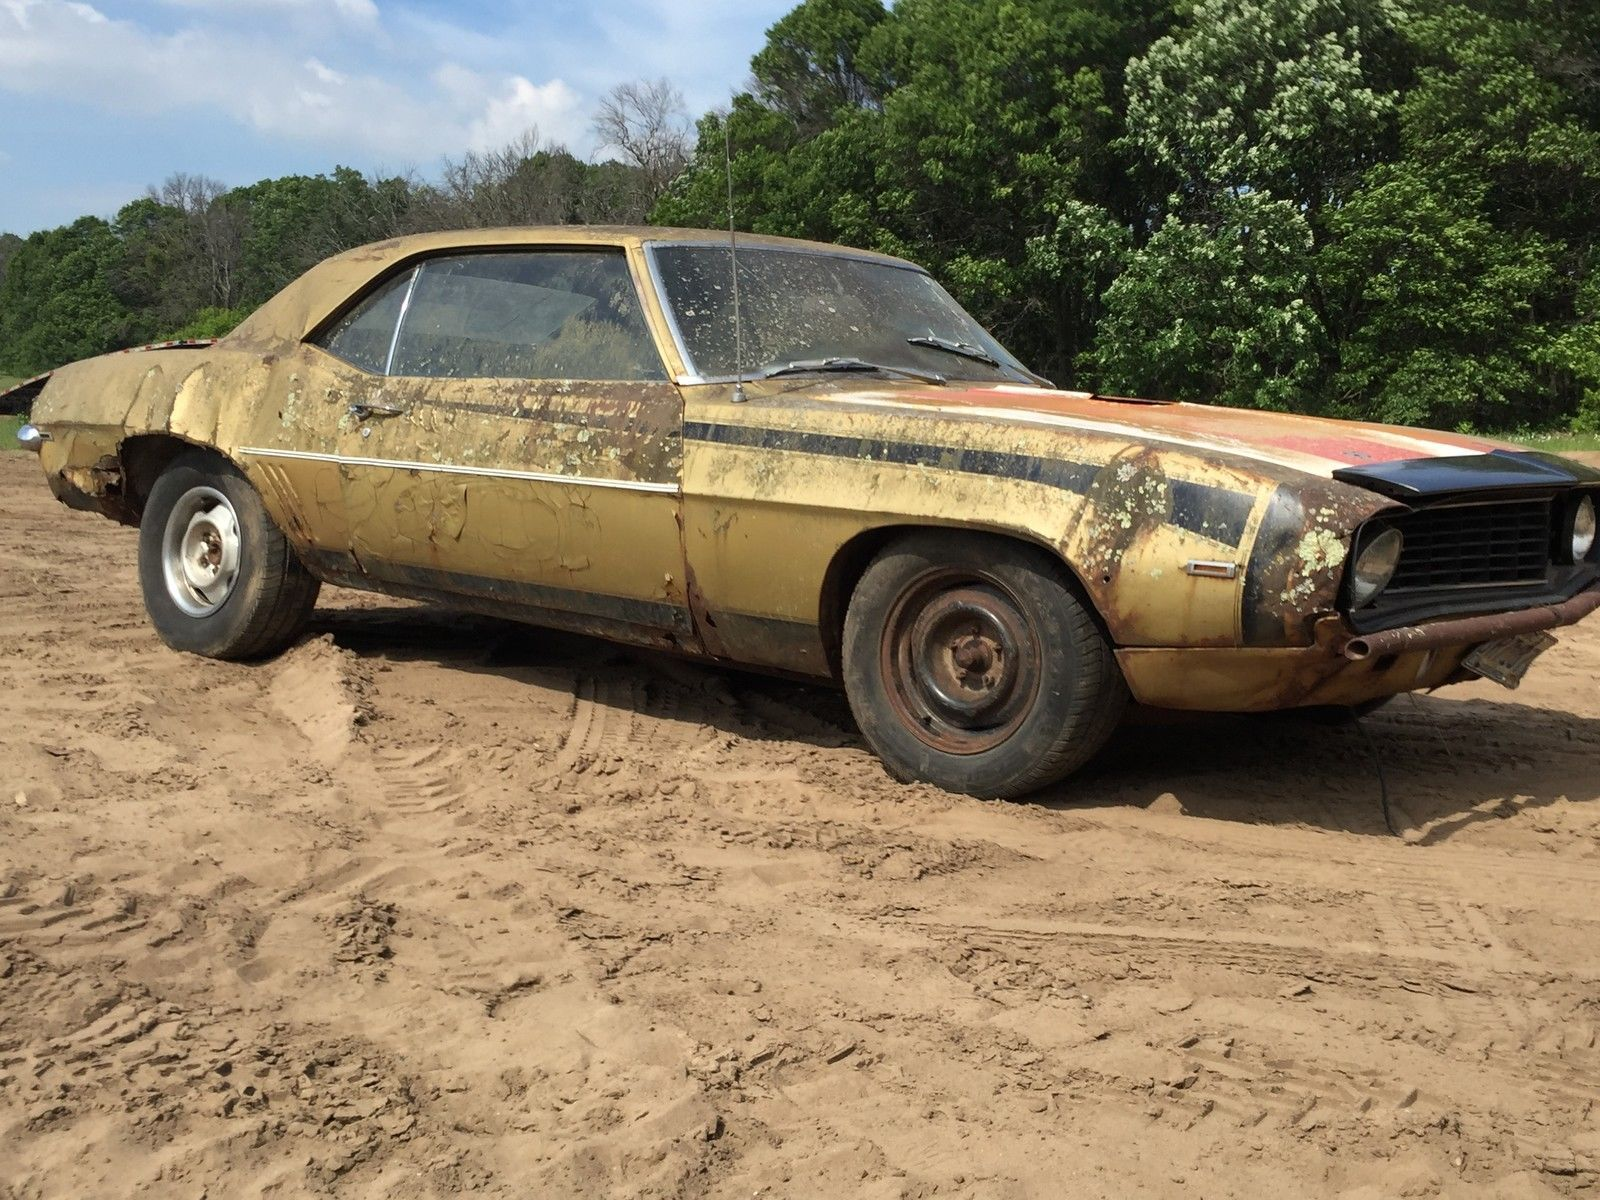 1969 Chevrolet Camaro Project car bar find | Project cars for sale ...